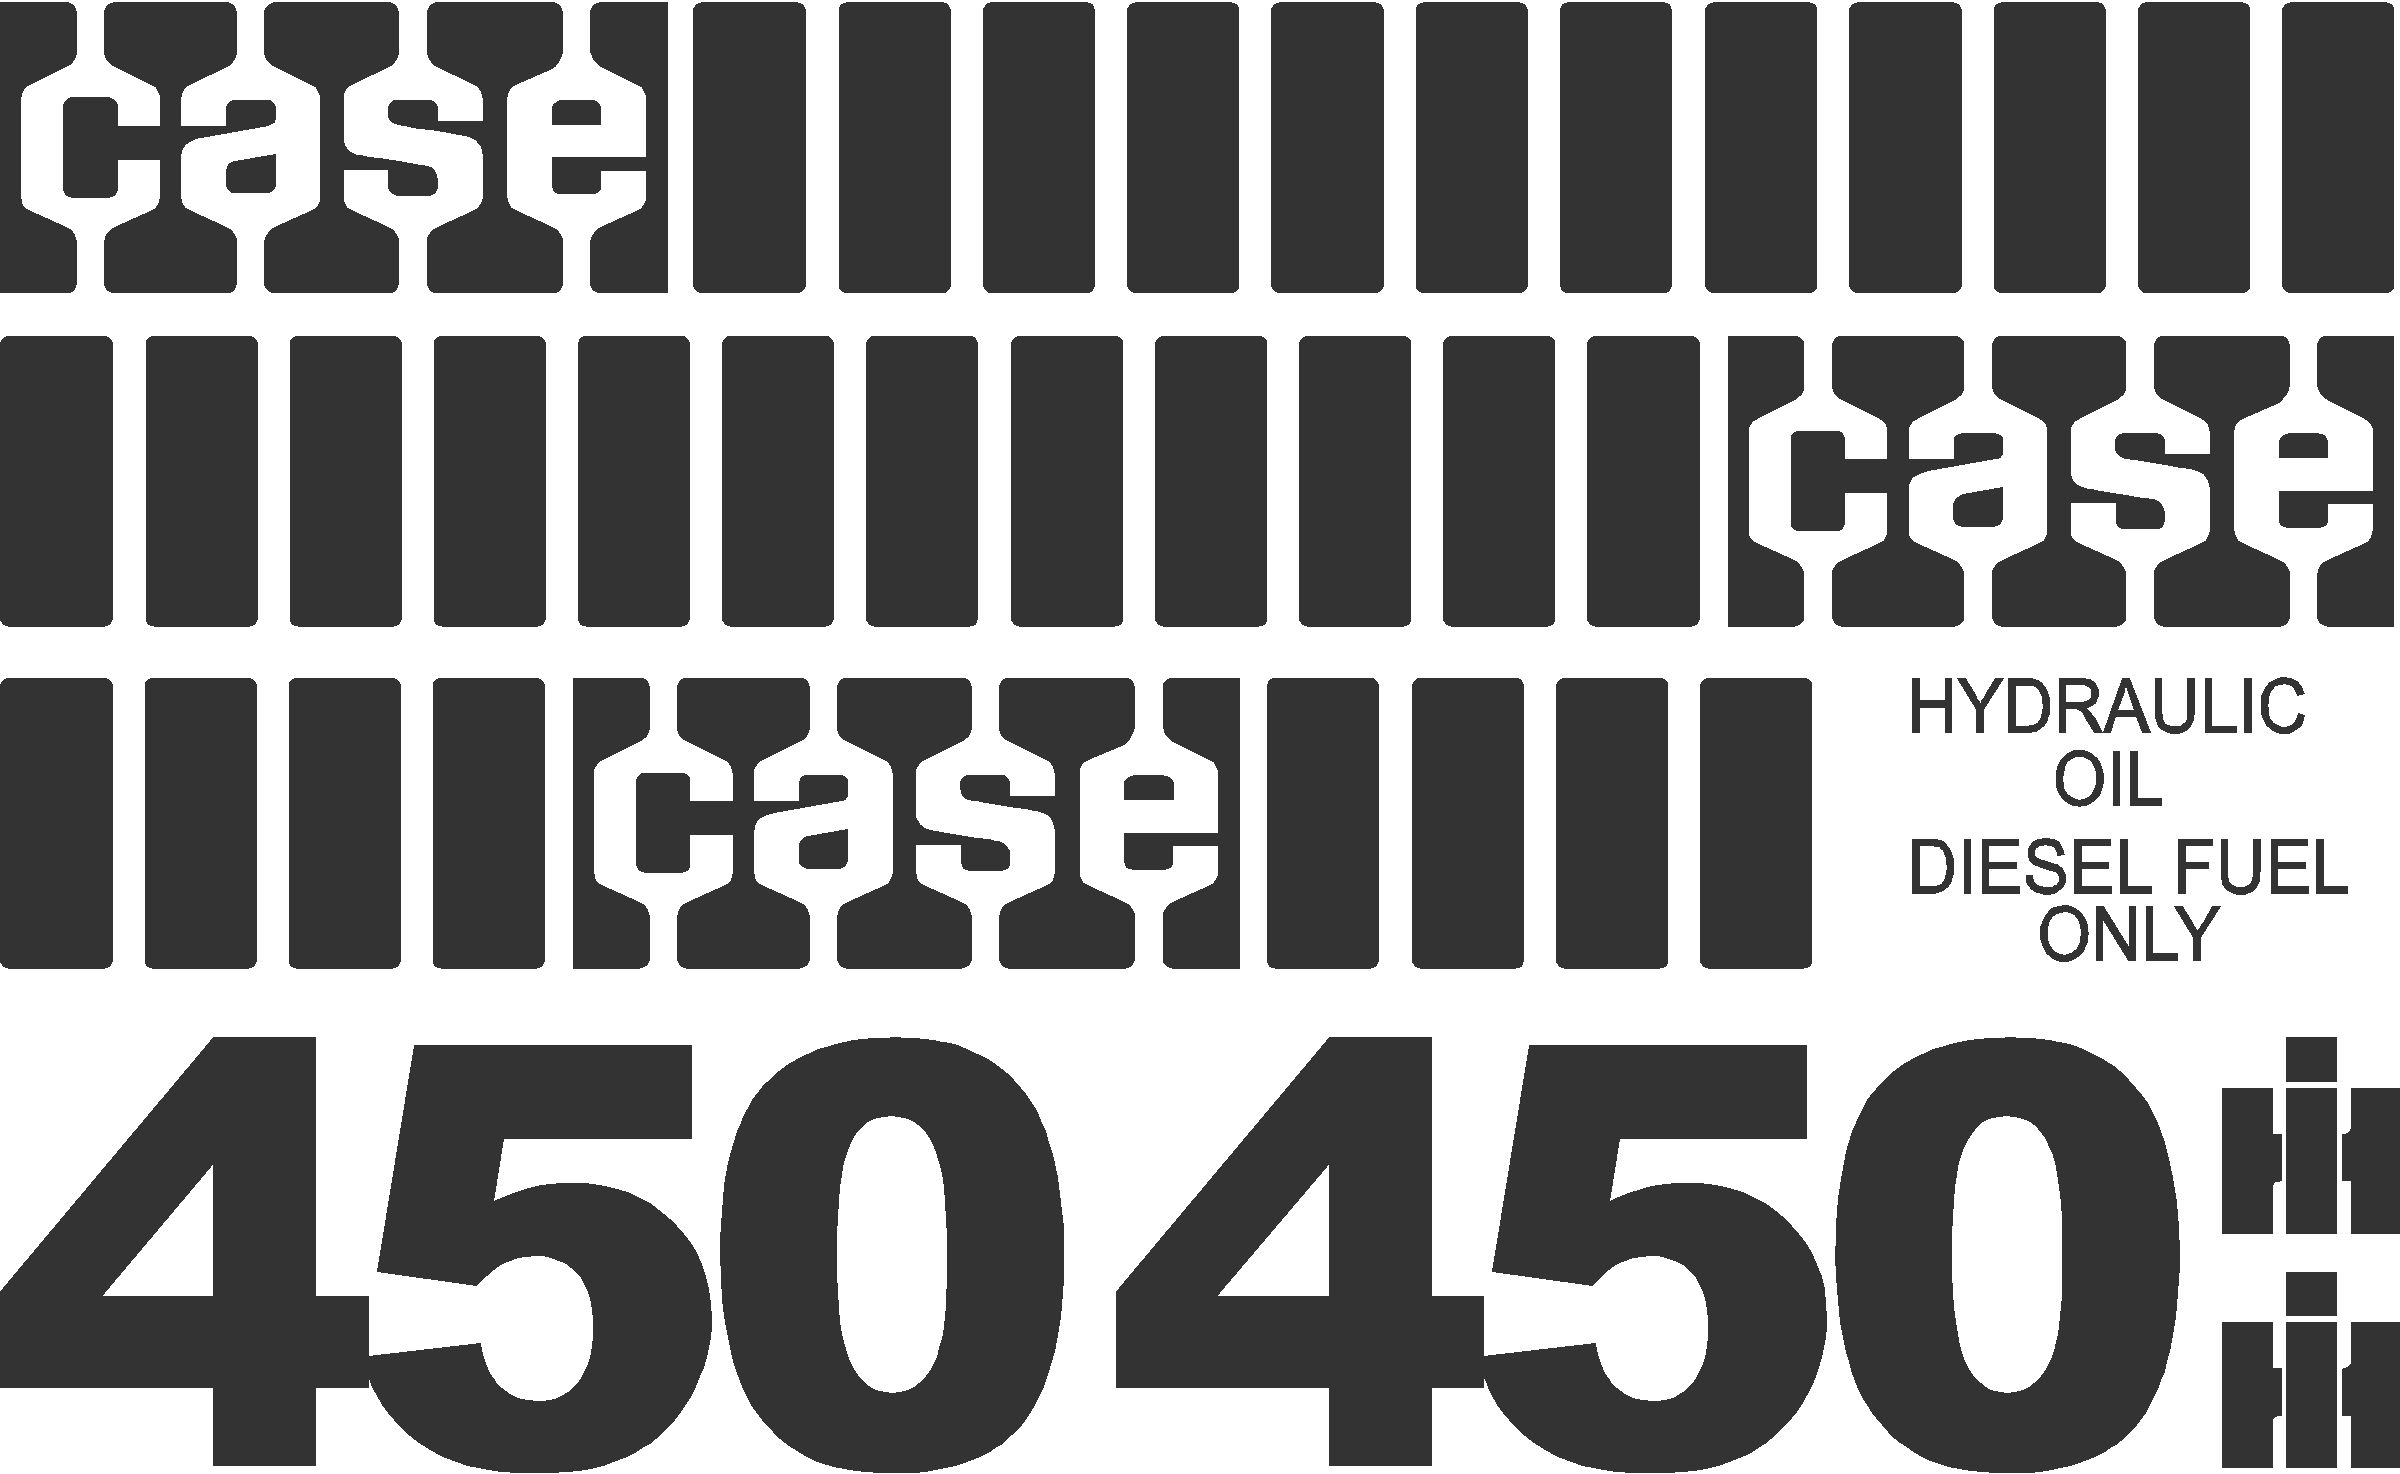 7250 Case Decal Kits : Case old style dozer new replacement decal kit